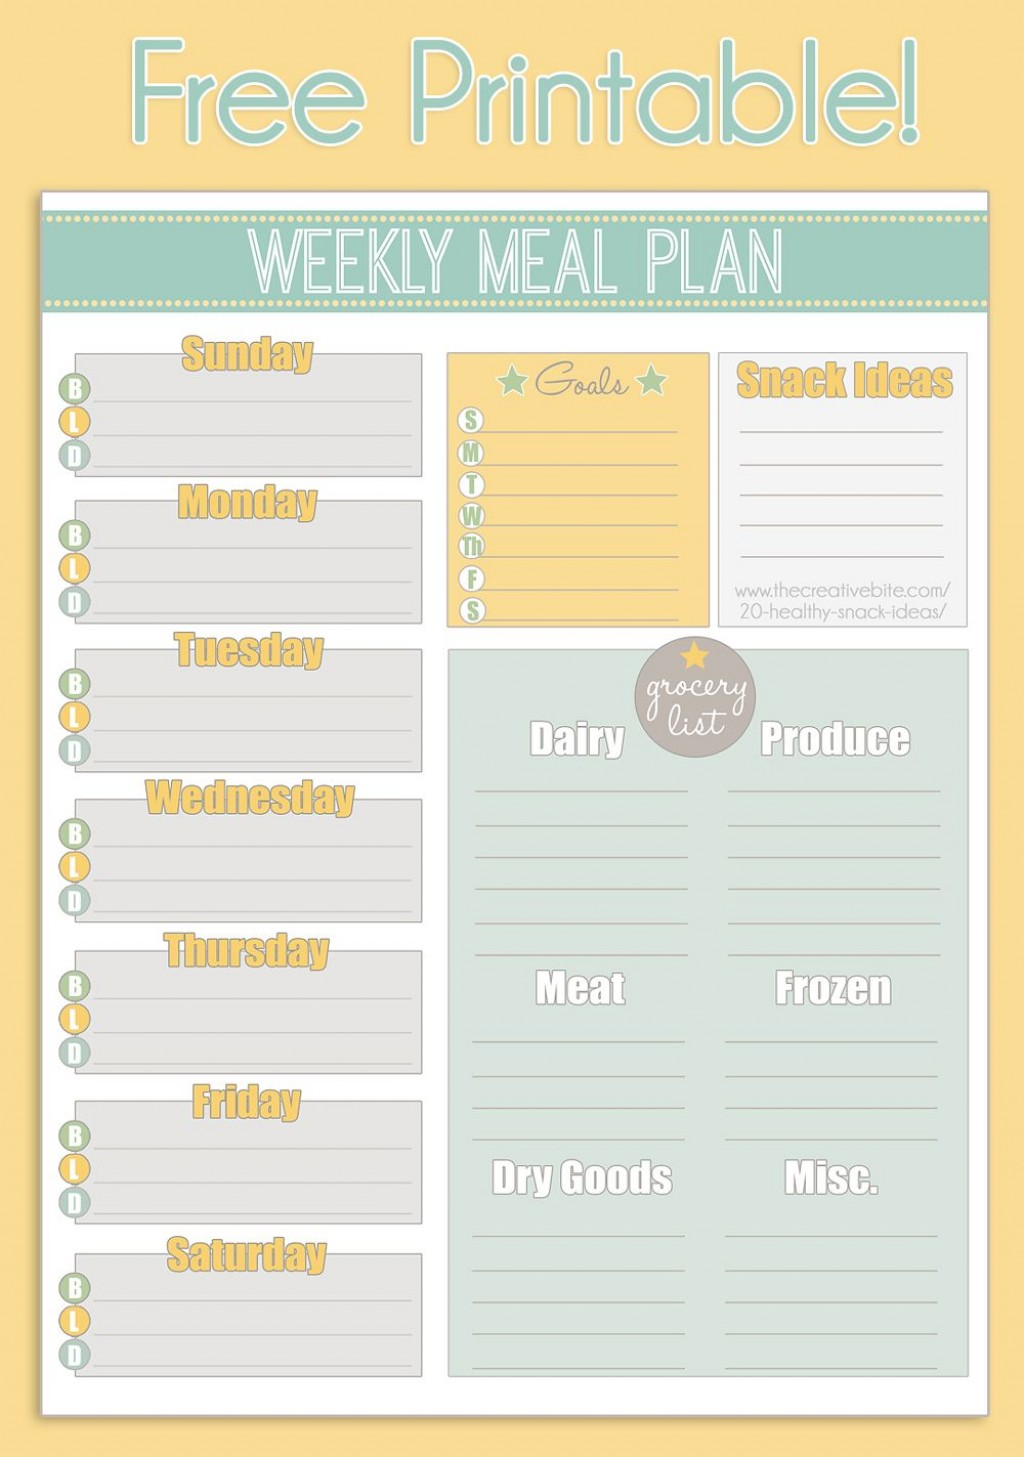 004 Unbelievable Family Meal Planner Template Image  Word MenuLarge